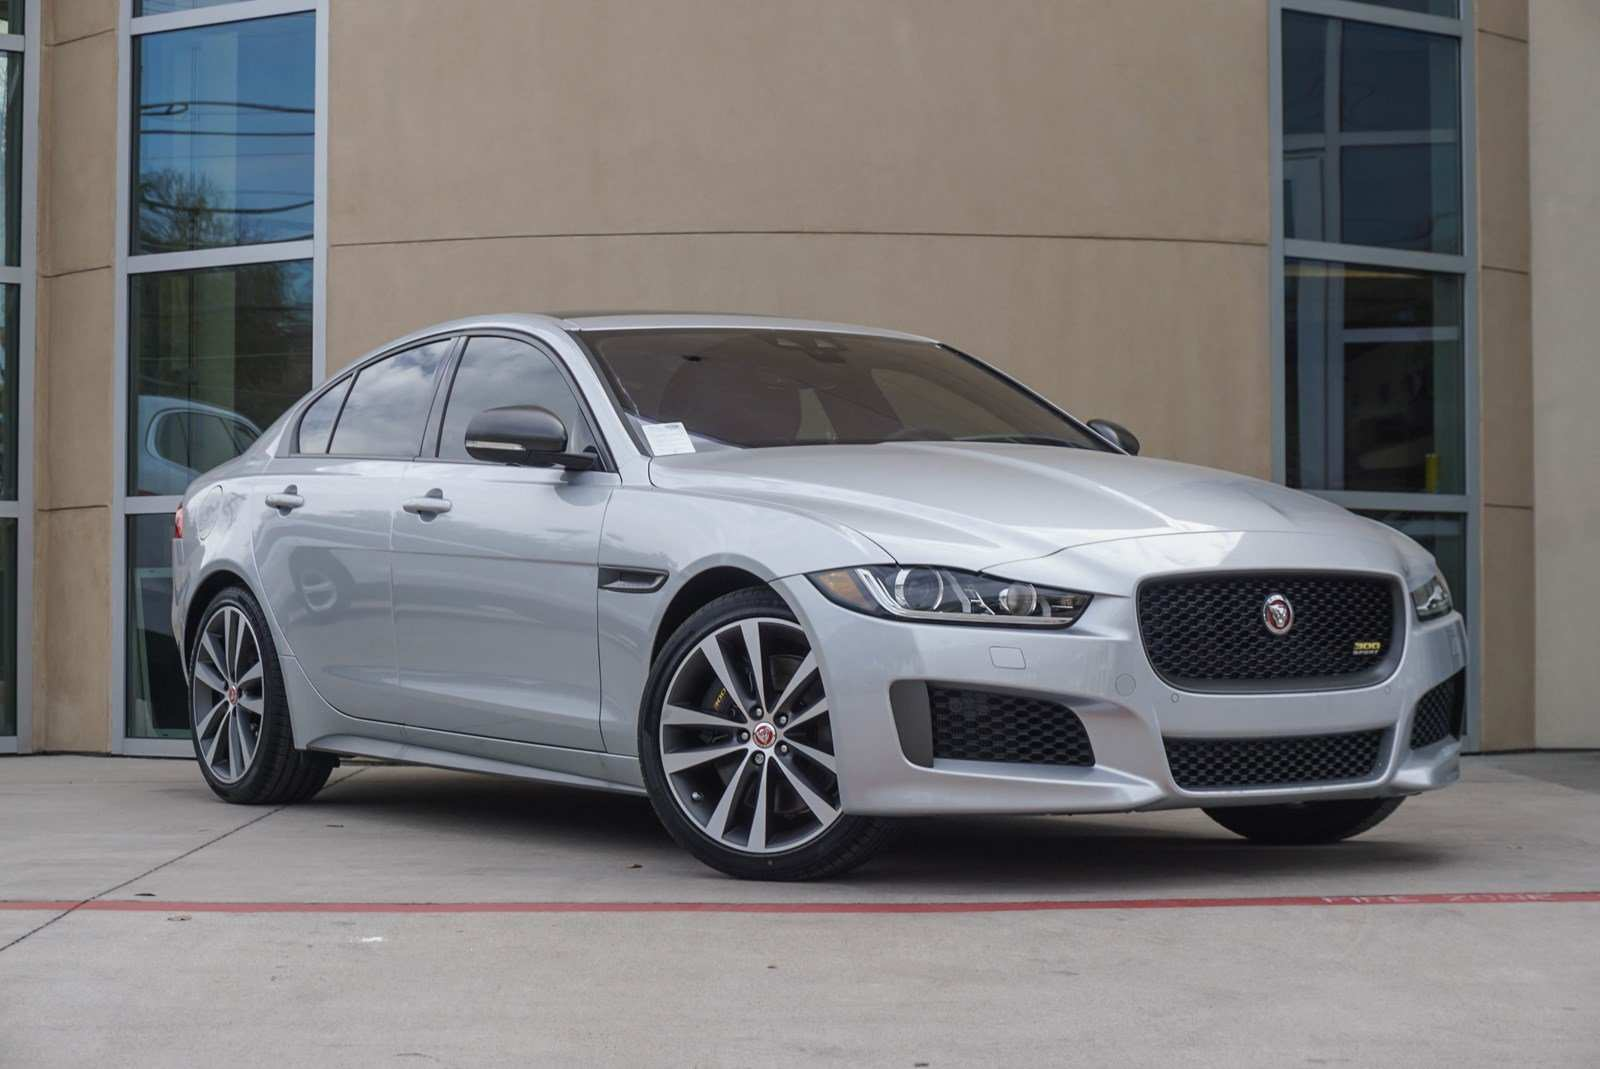 37 All New Jaguar Xe 2019 Exterior And Interior